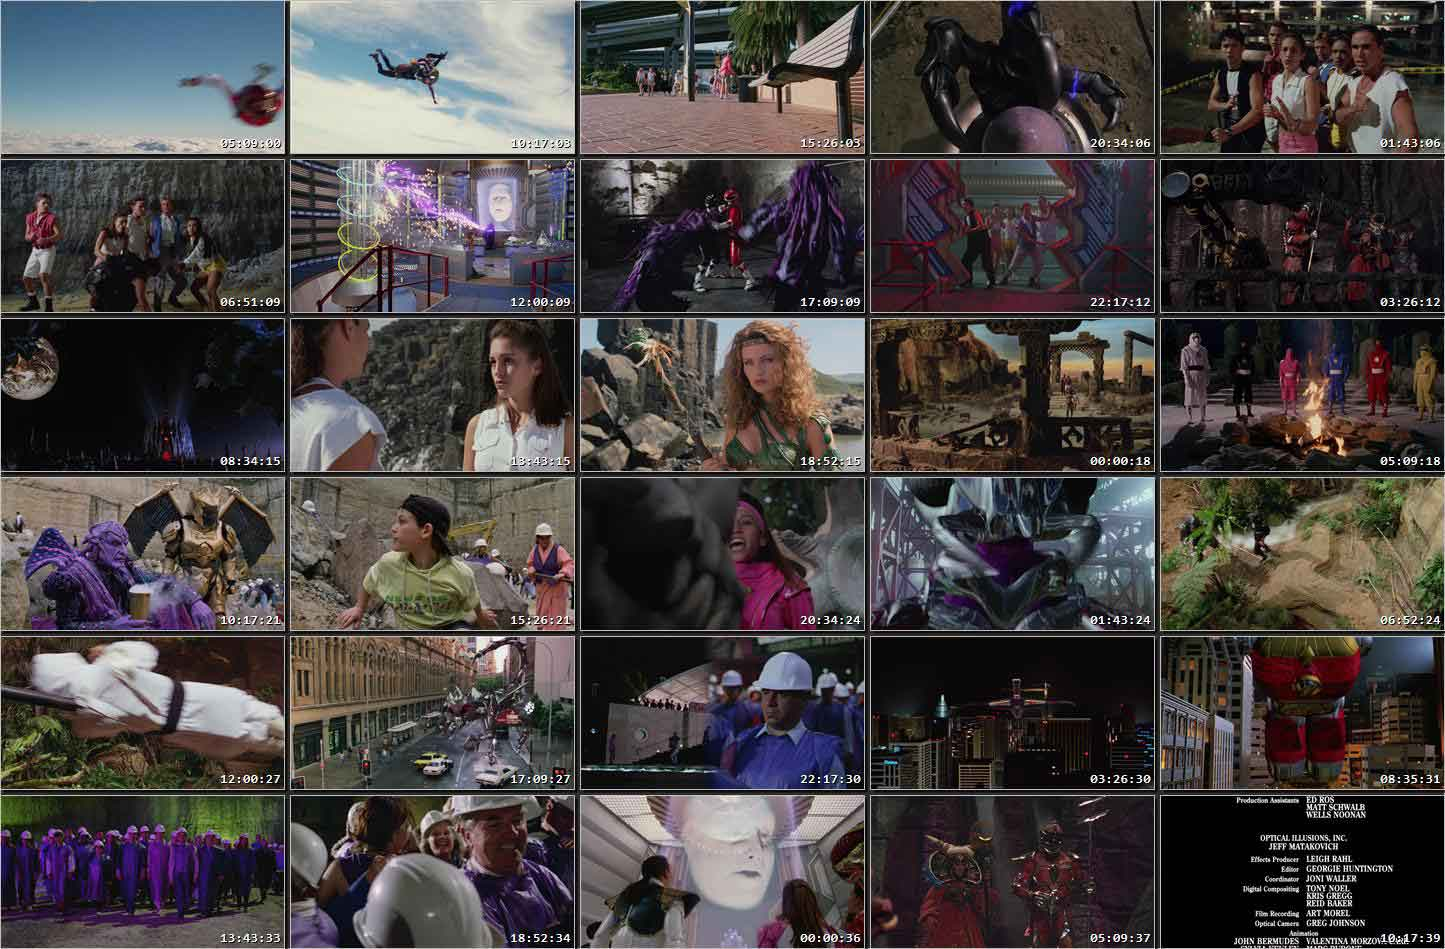 mighty morphin power rangers the movie 720p